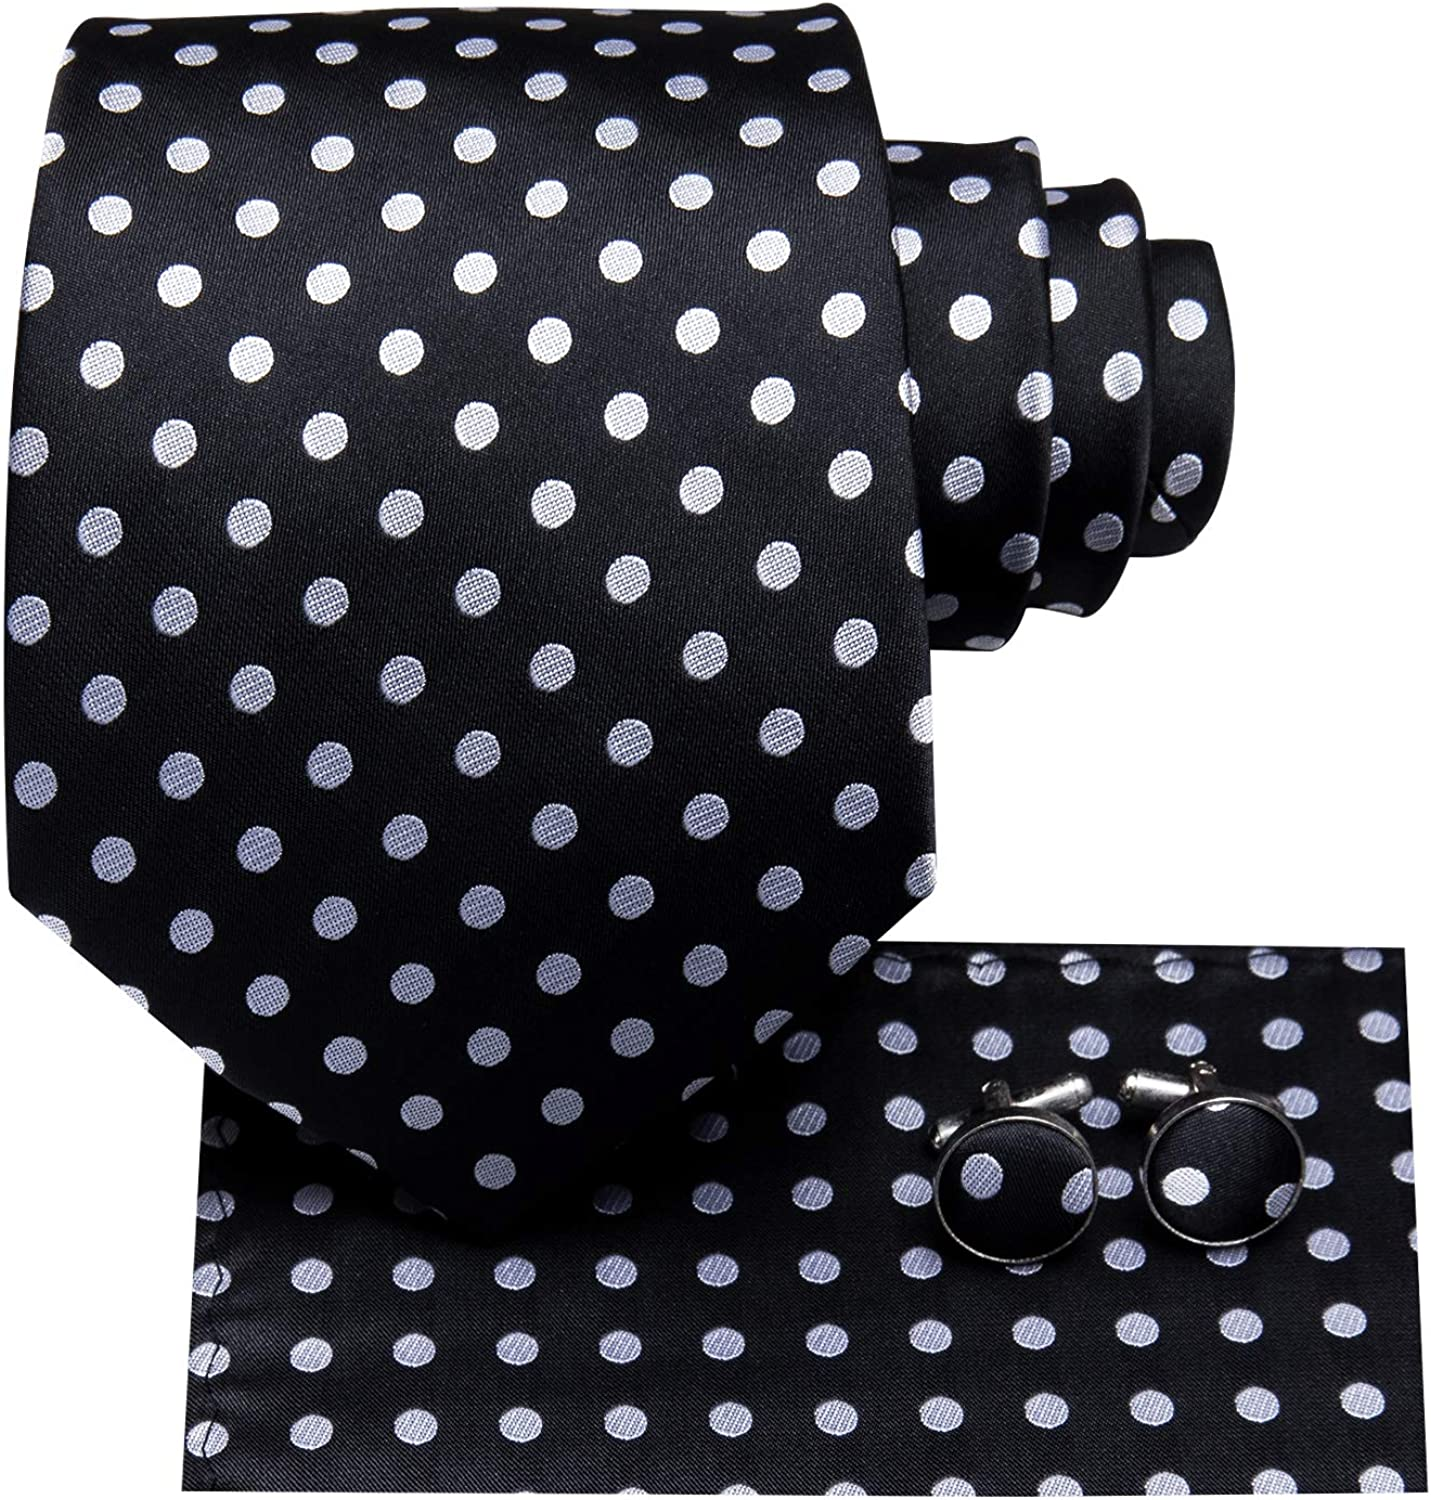 Hi-Tie Men's Black with White Dots Ties for Wedding Silk Tie Classic Neckties with Pocket Square and Cufflinks Set